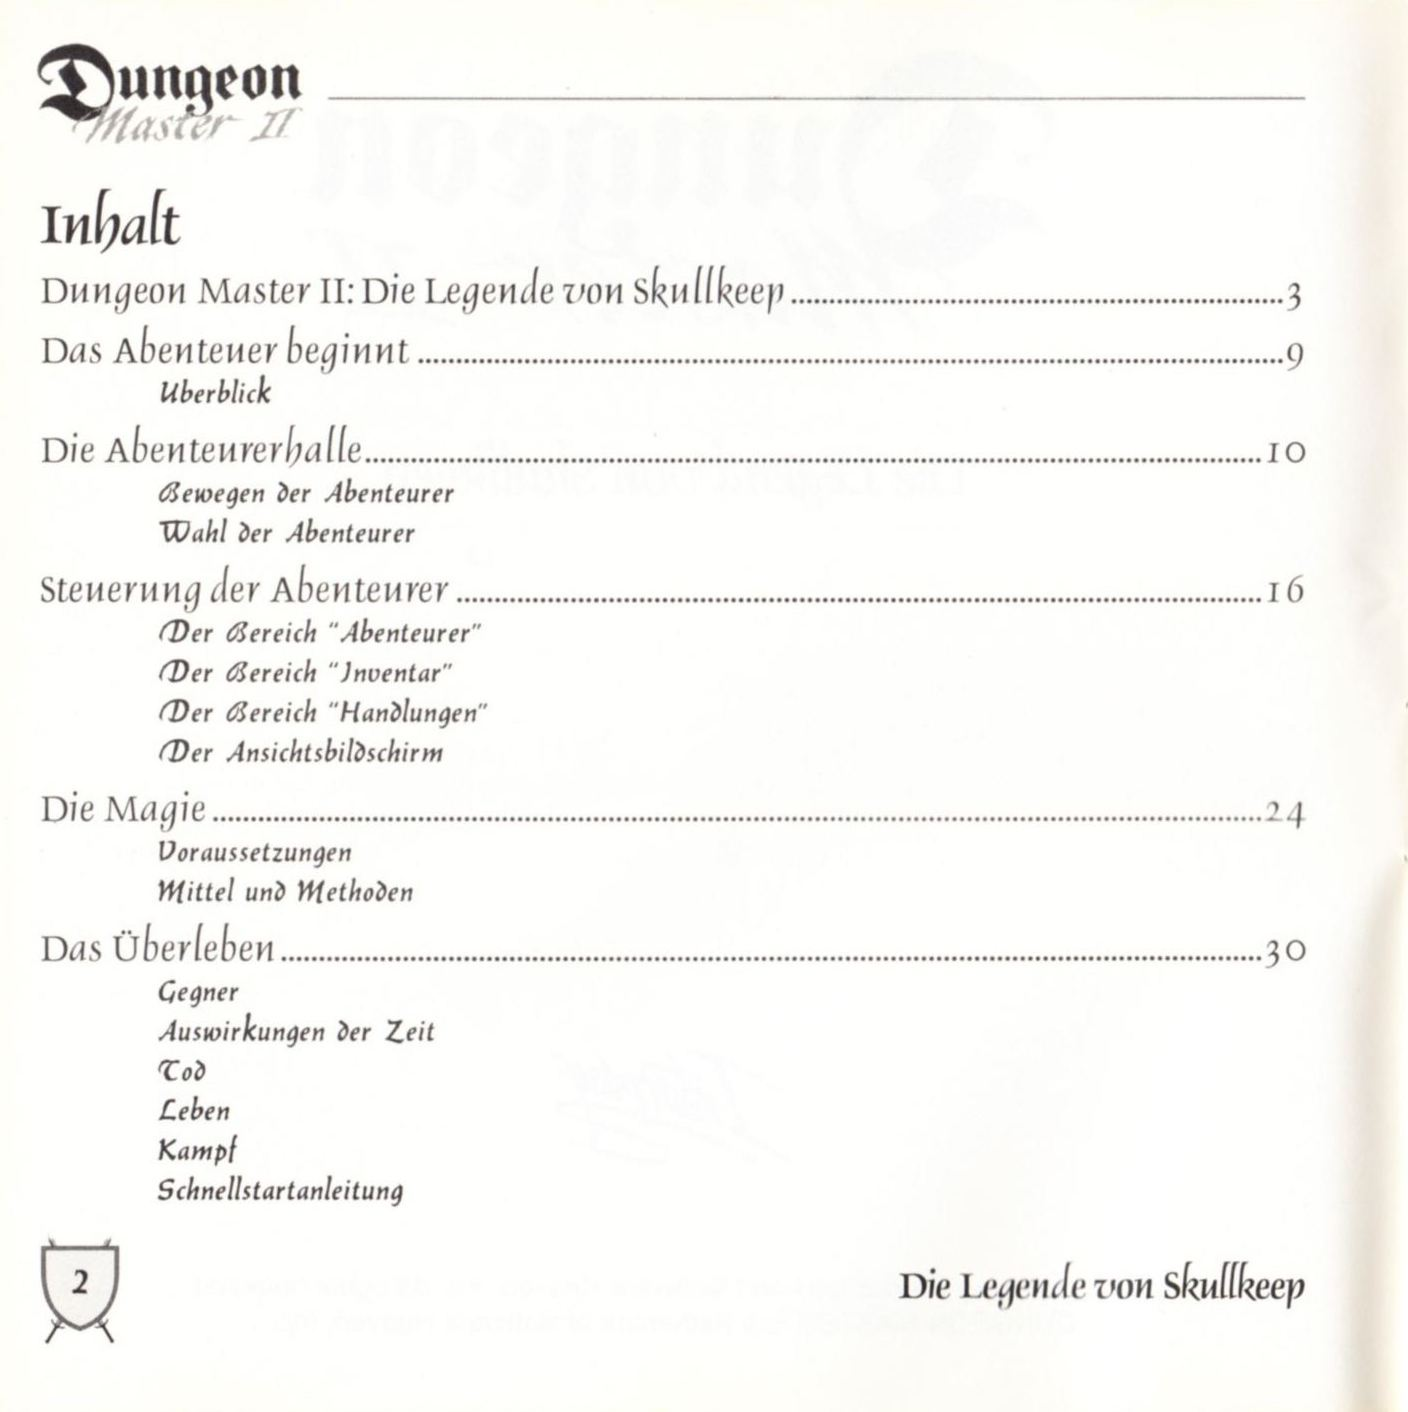 Game - Dungeon Master II - DE - PC - Blackmarket With Booklet - Booklet - Page 004 - Scan